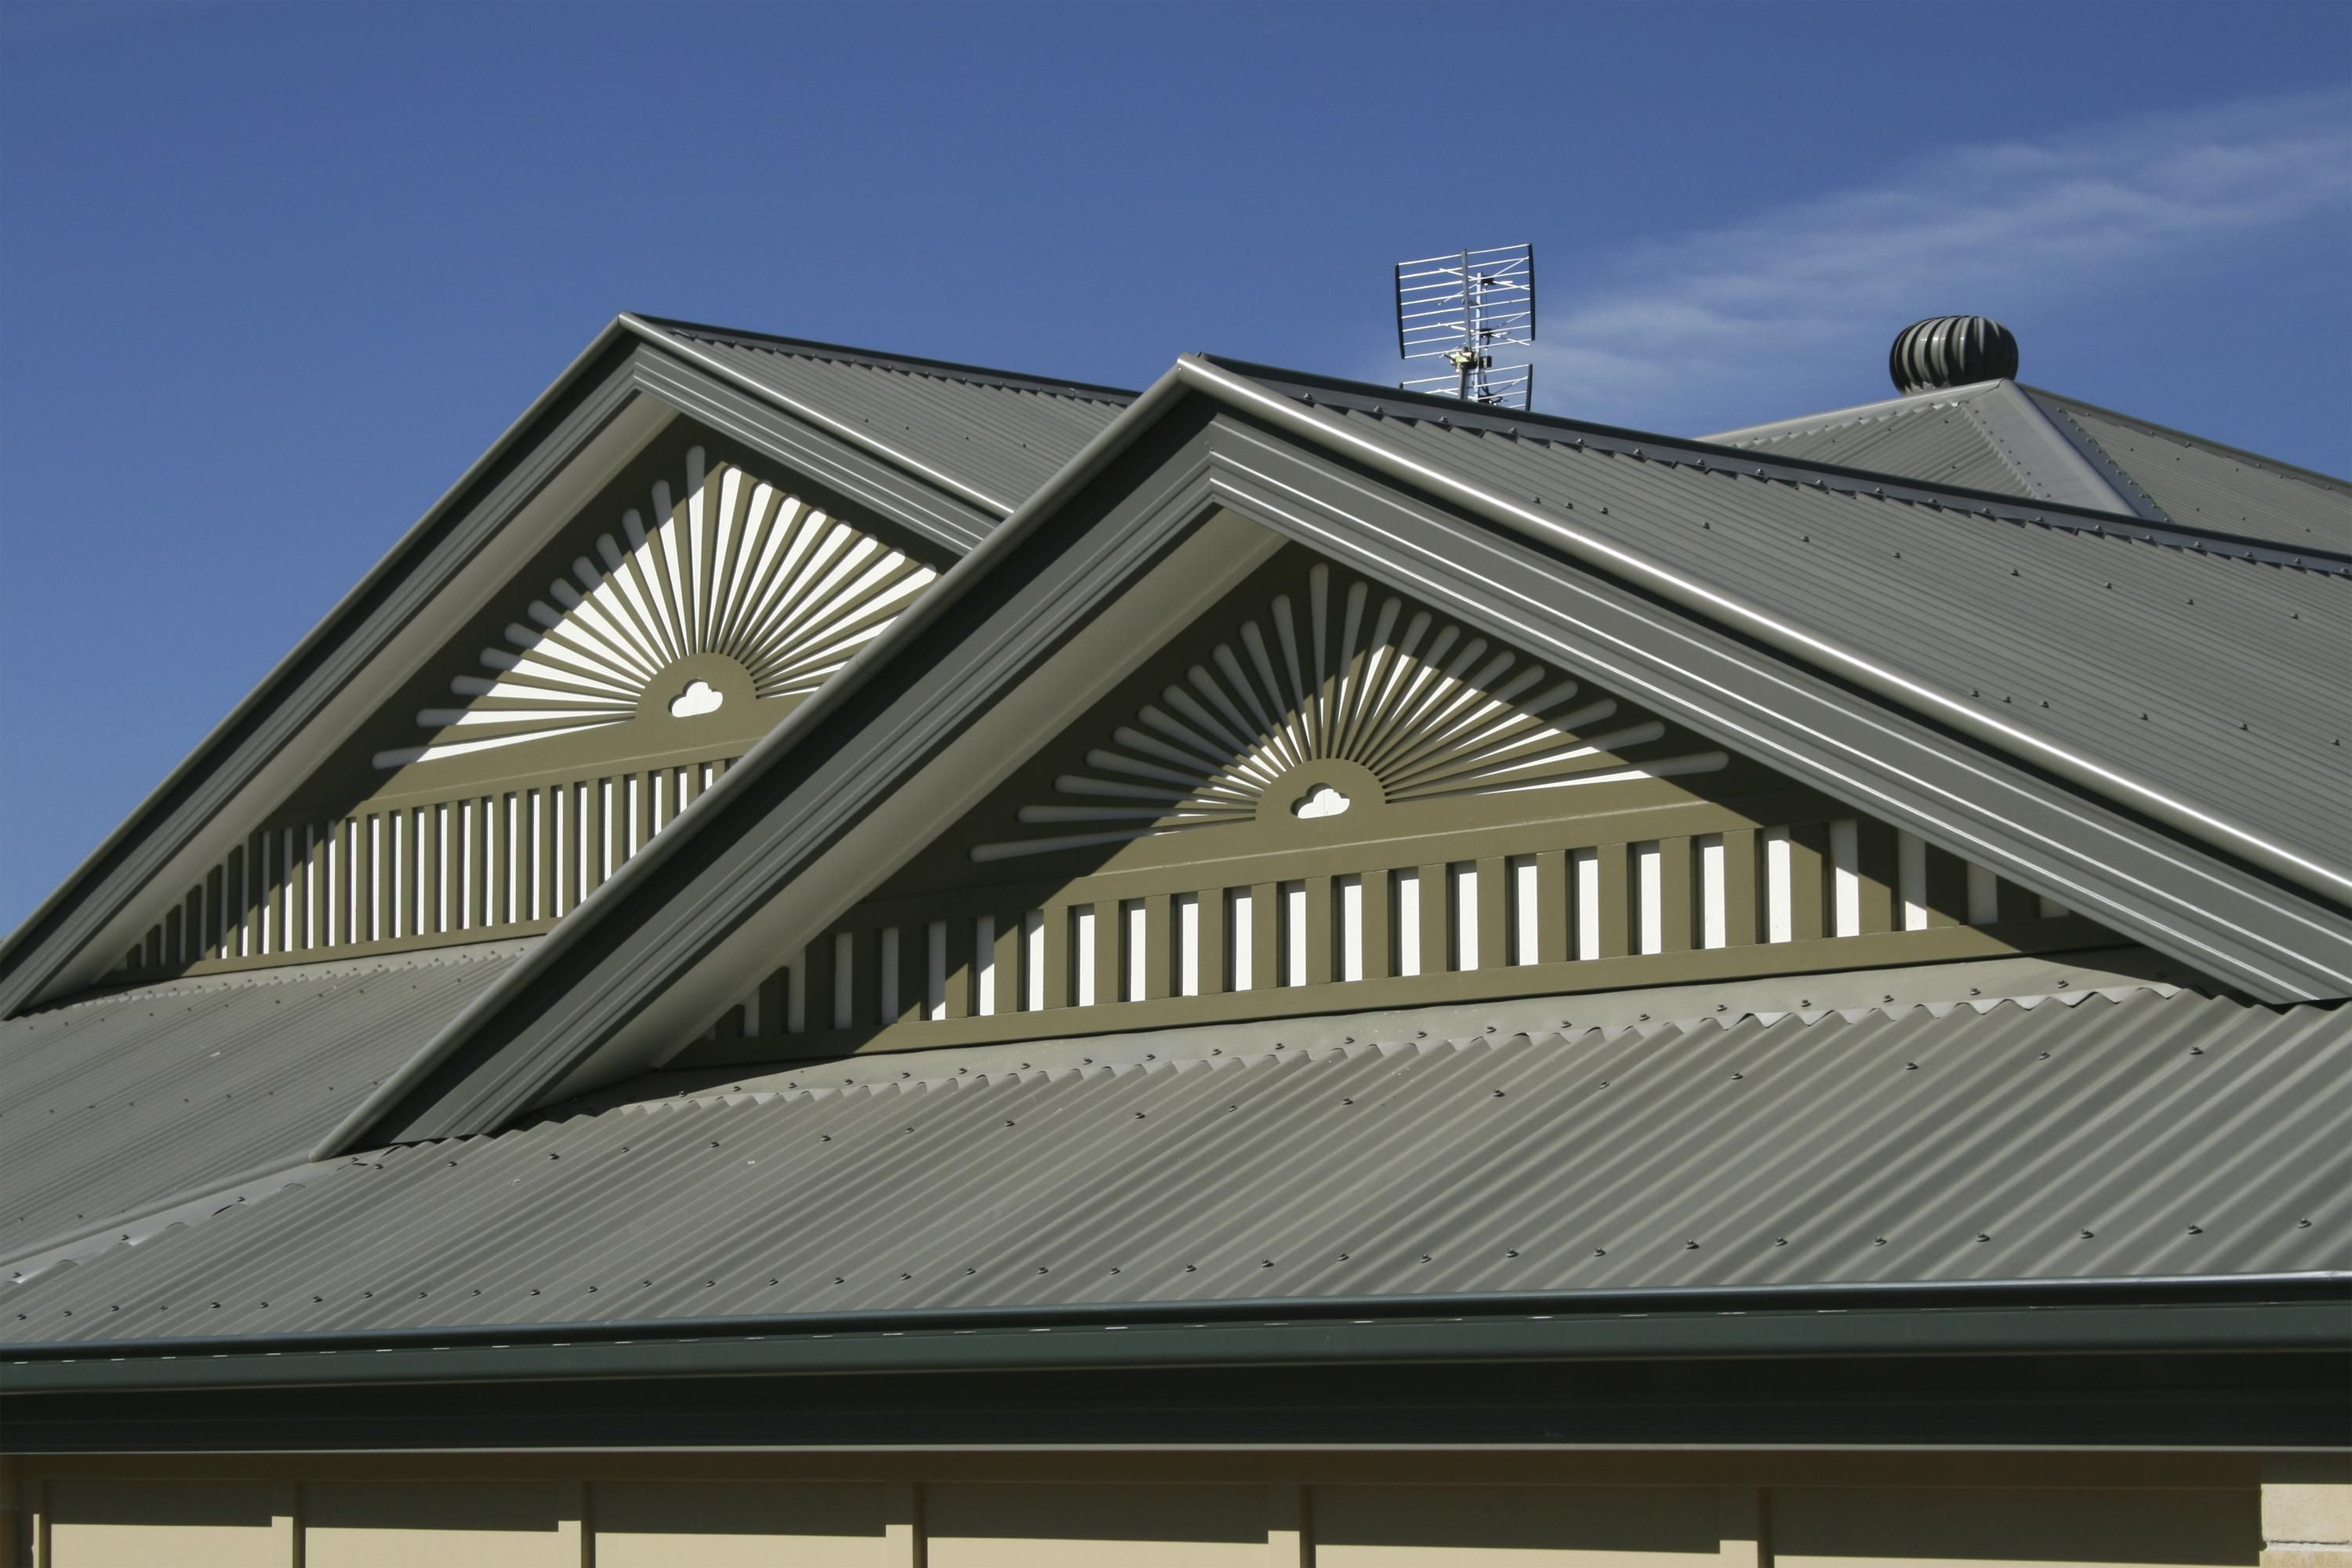 Standing Seam Metal Roof Basics Before You Buy Gable Roof Design Standing Seam Metal Roof Fibreglass Roof